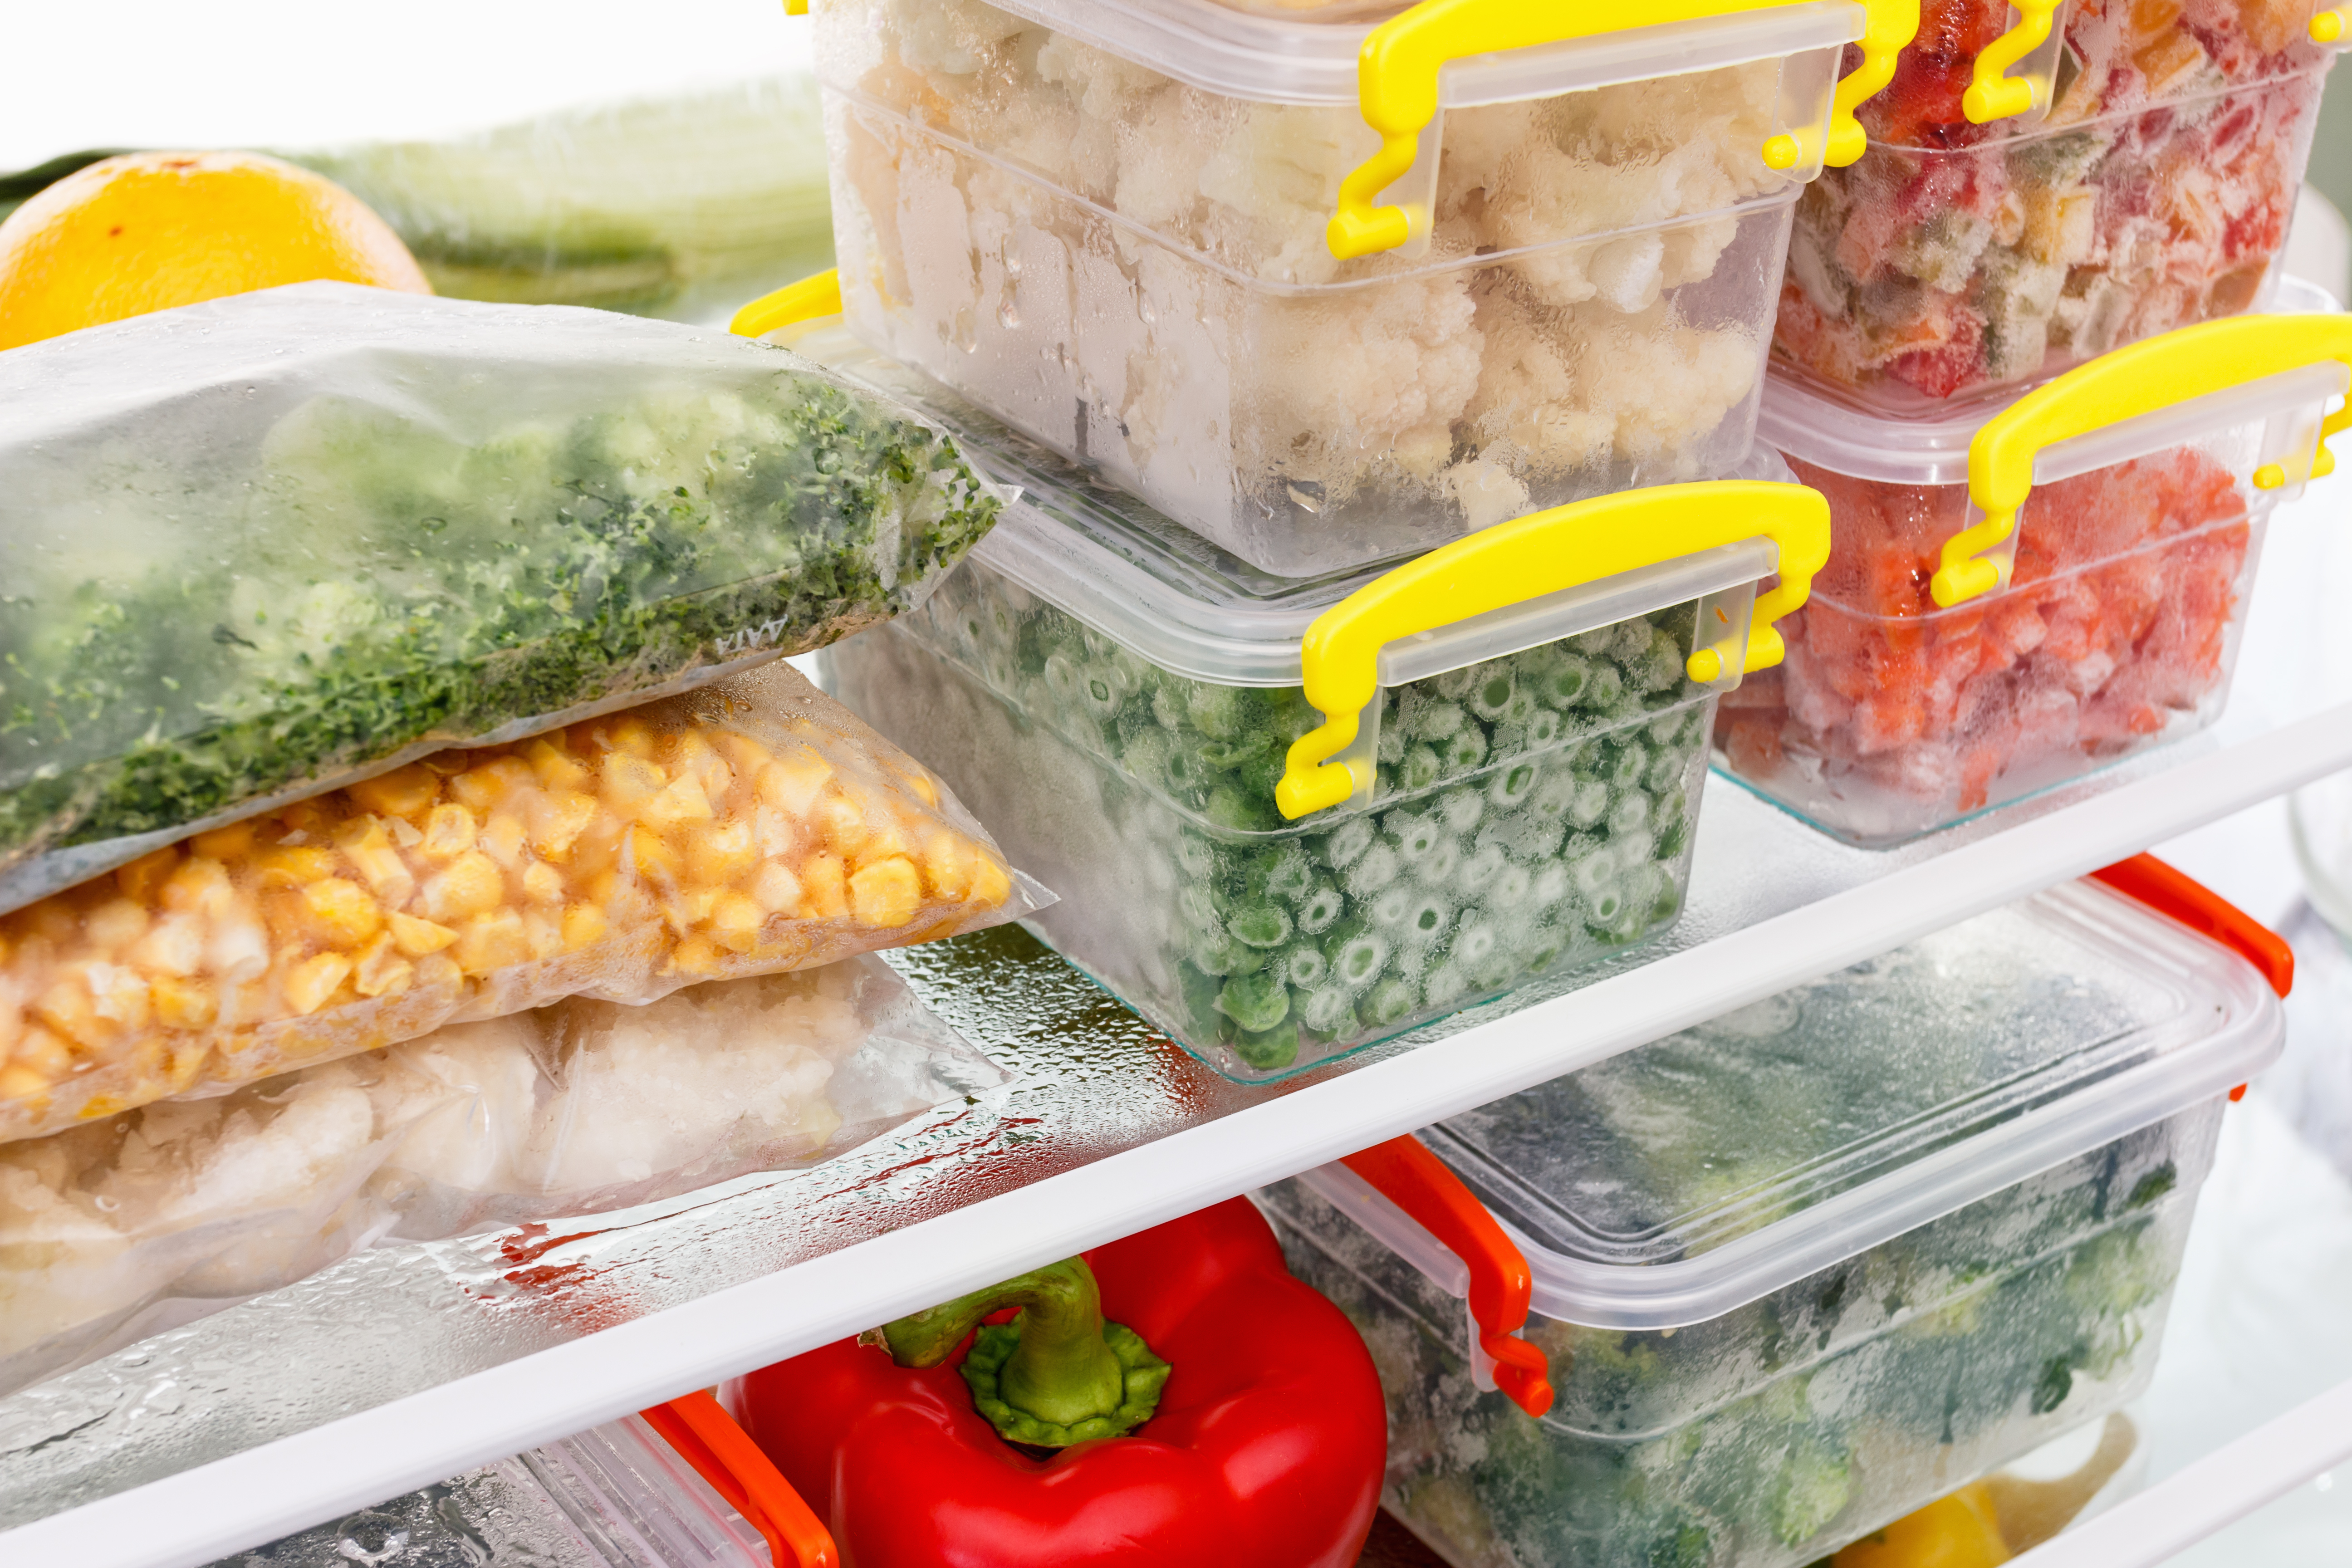 Summer freezing – Chest freezers from Belling